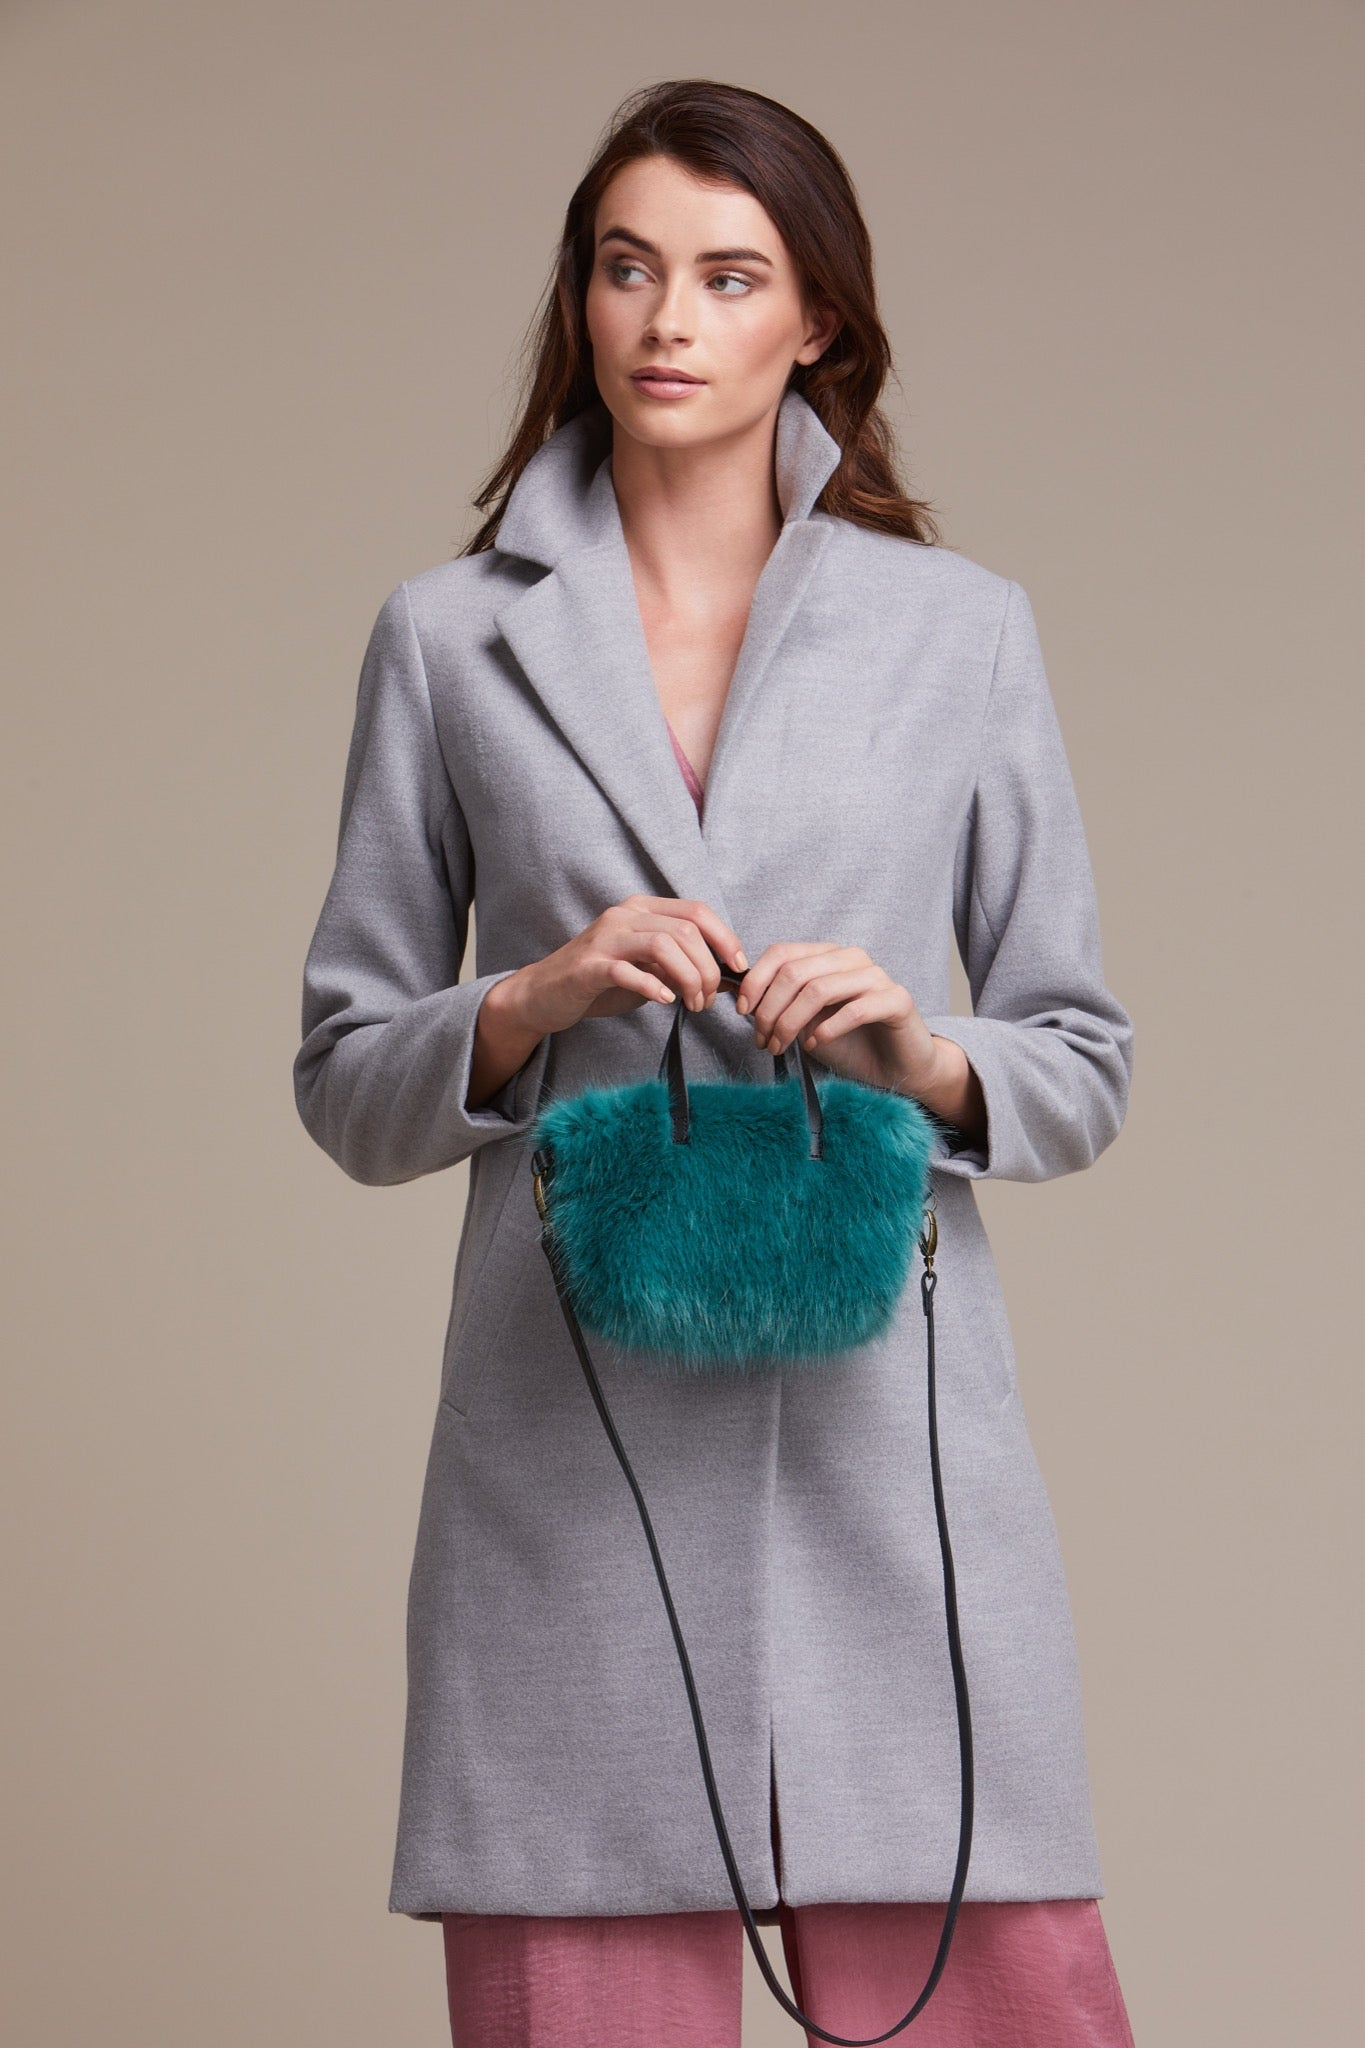 Lady holding sea green faux fur bag by Helen Moore